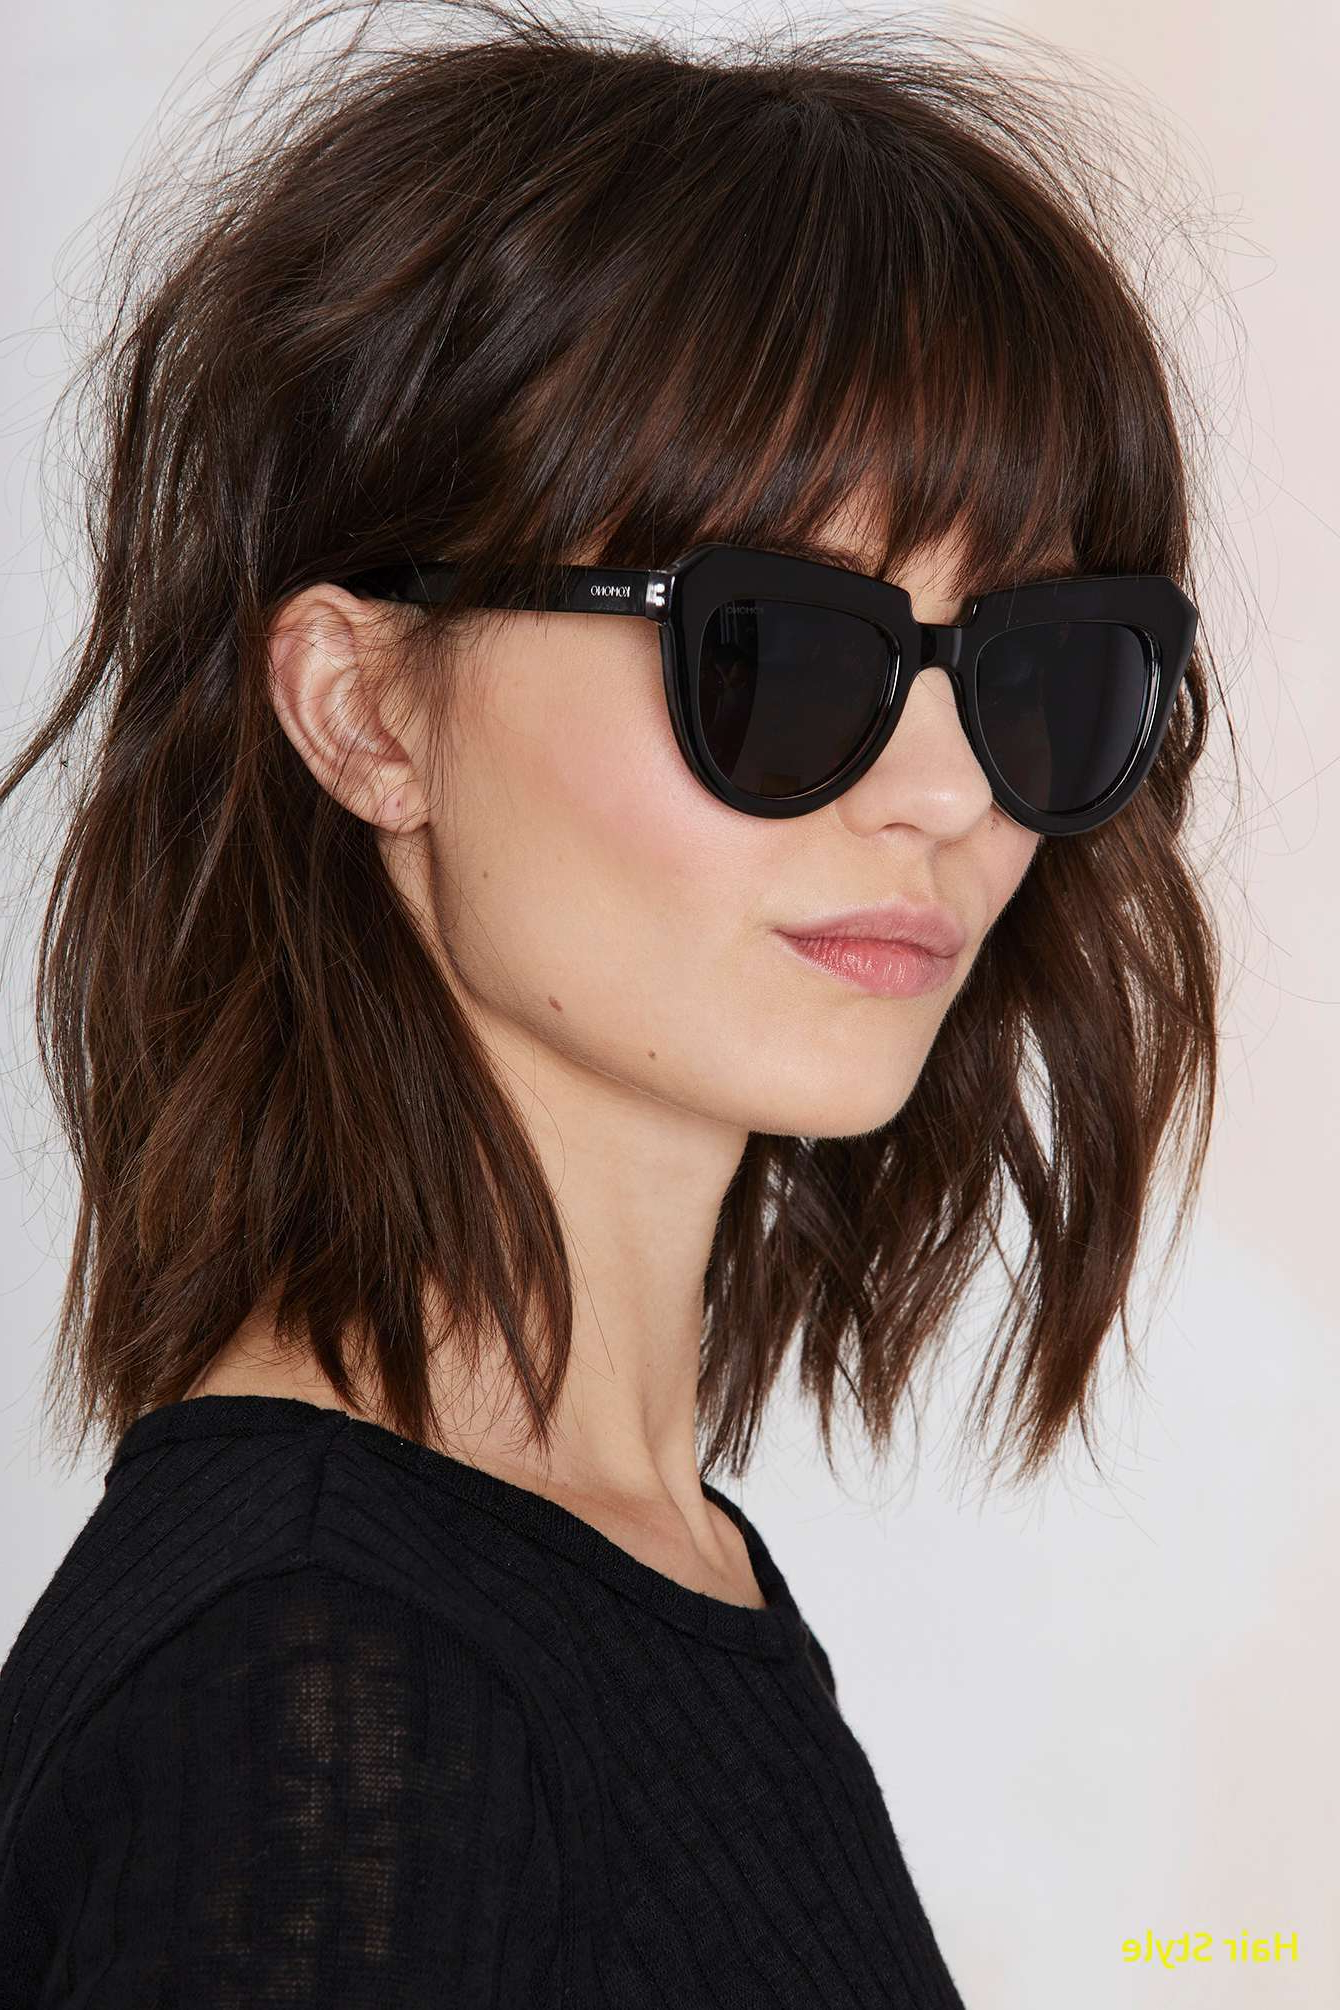 New Short Hairstyles With Glasses | Best Hairstyles Throughout Short Haircuts With Glasses (View 25 of 25)